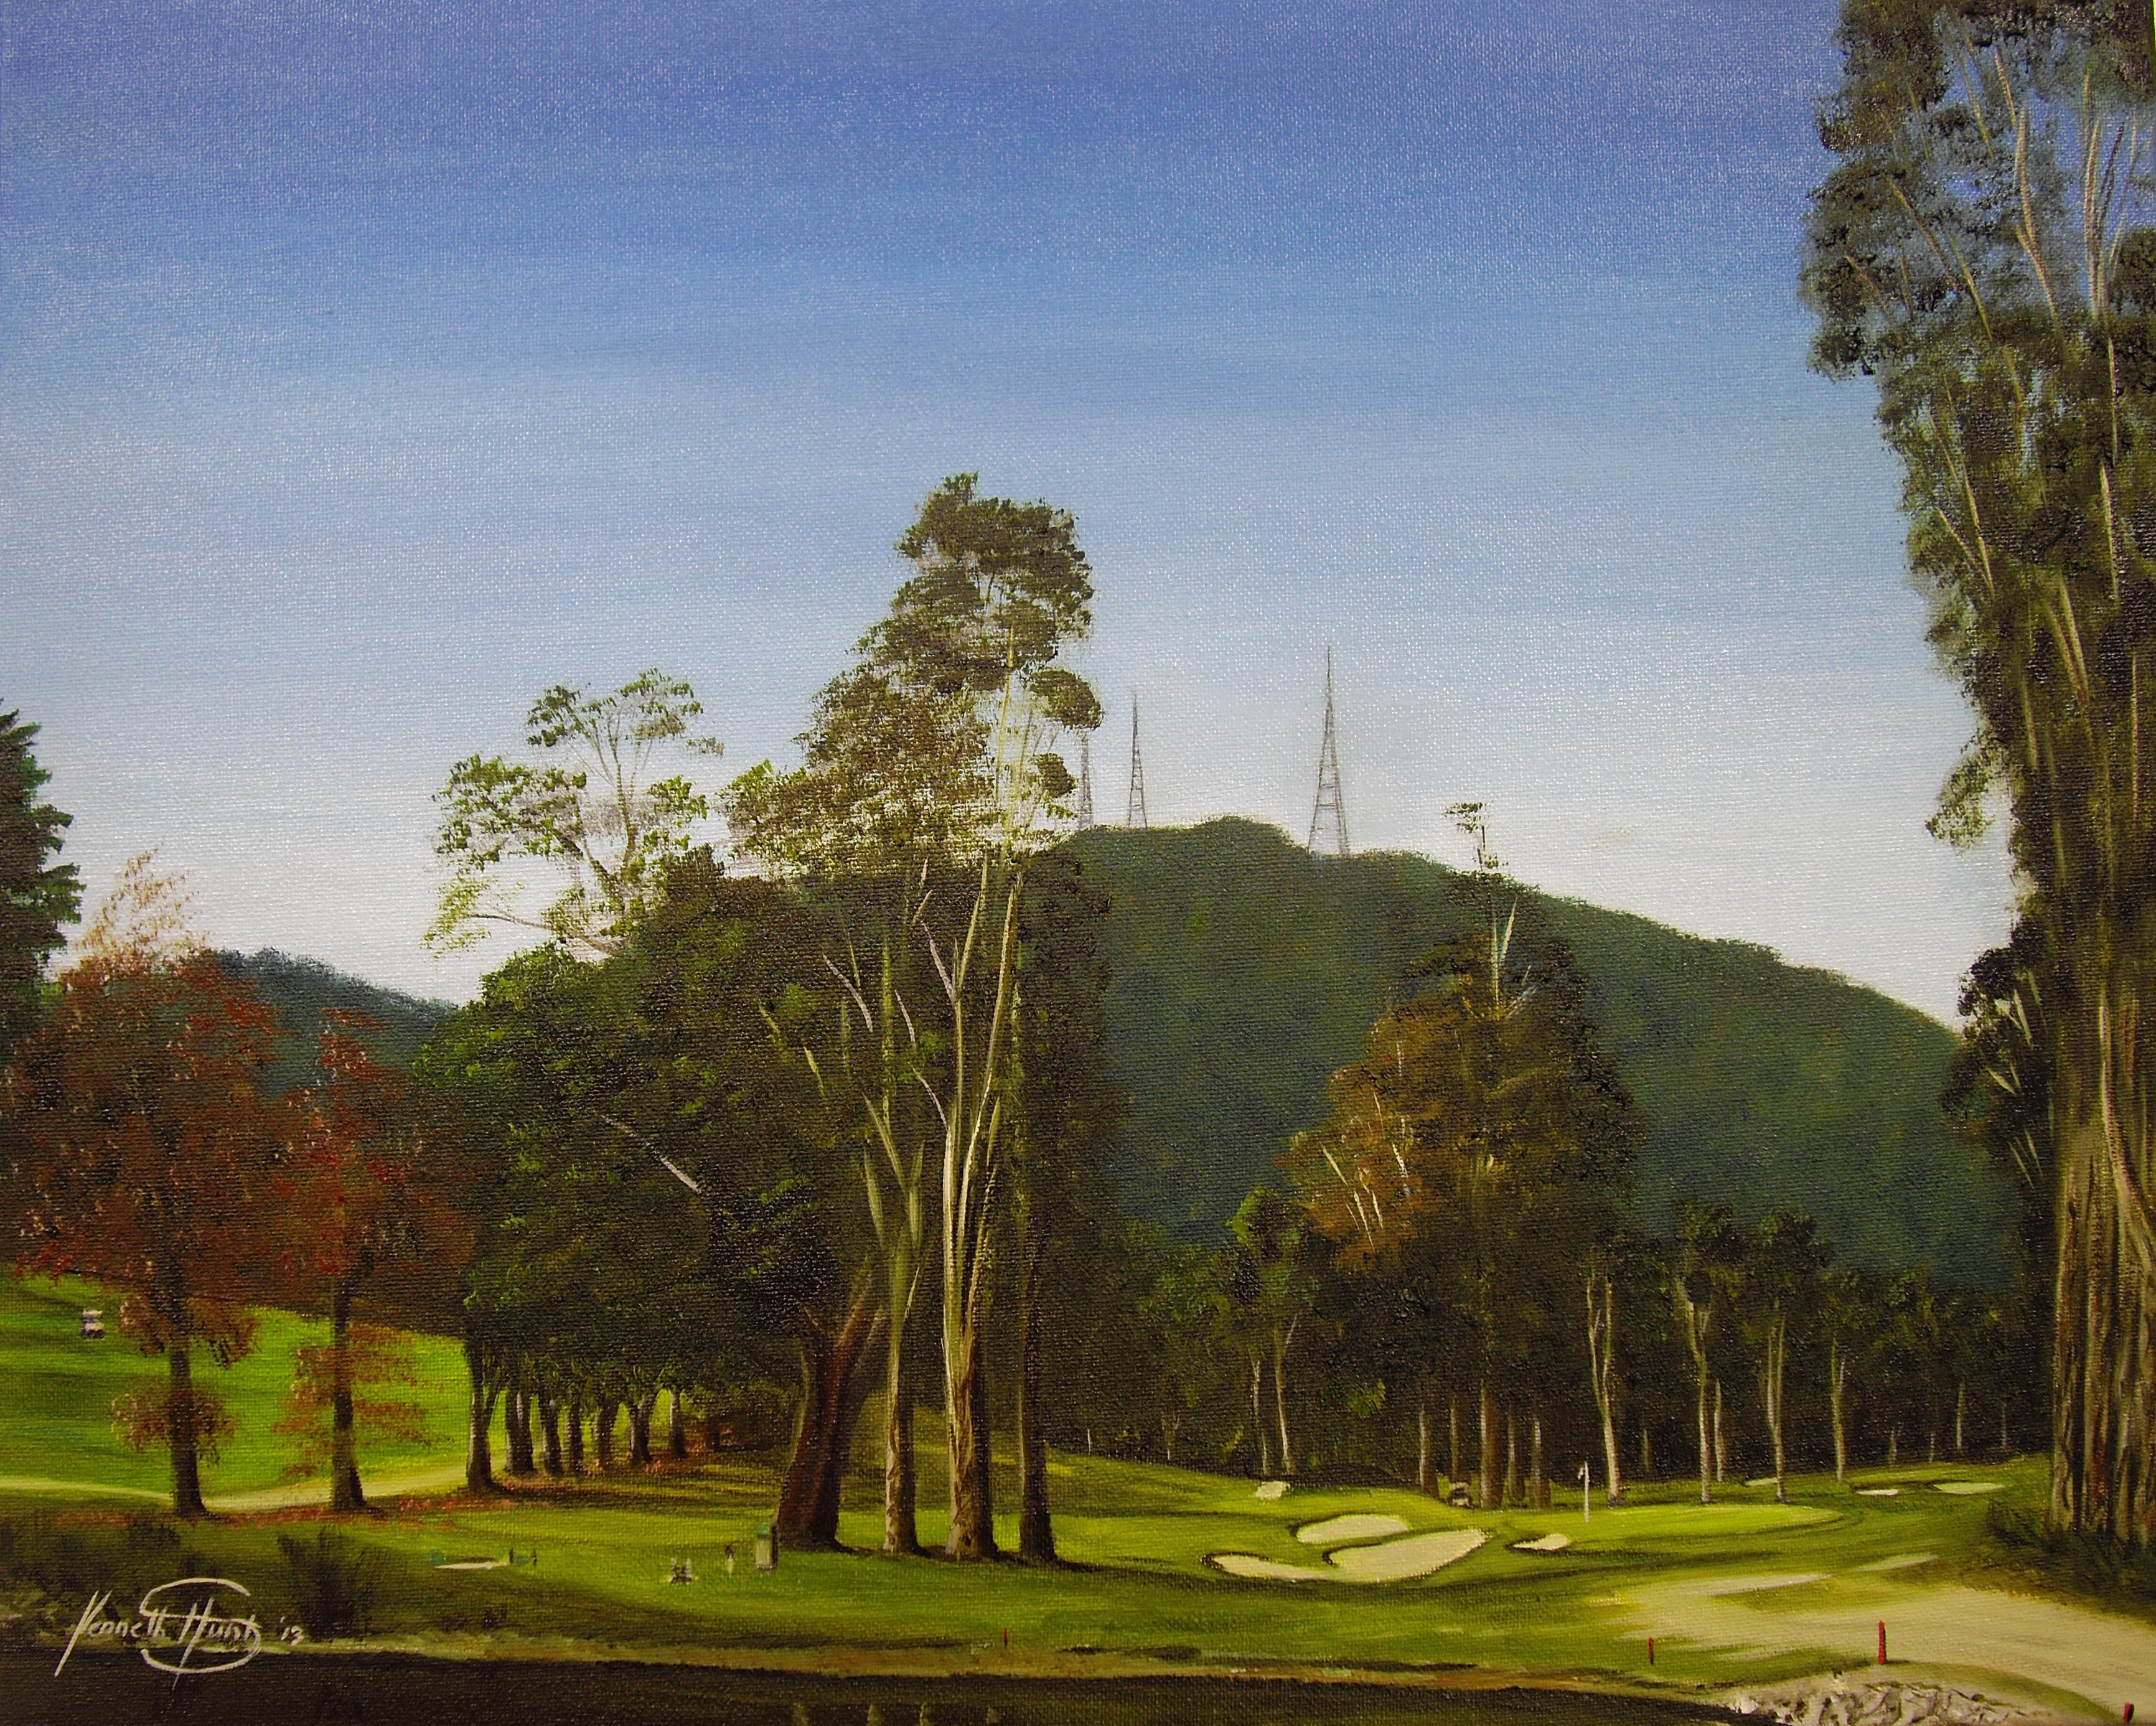 The Mount Dandenong Distraction